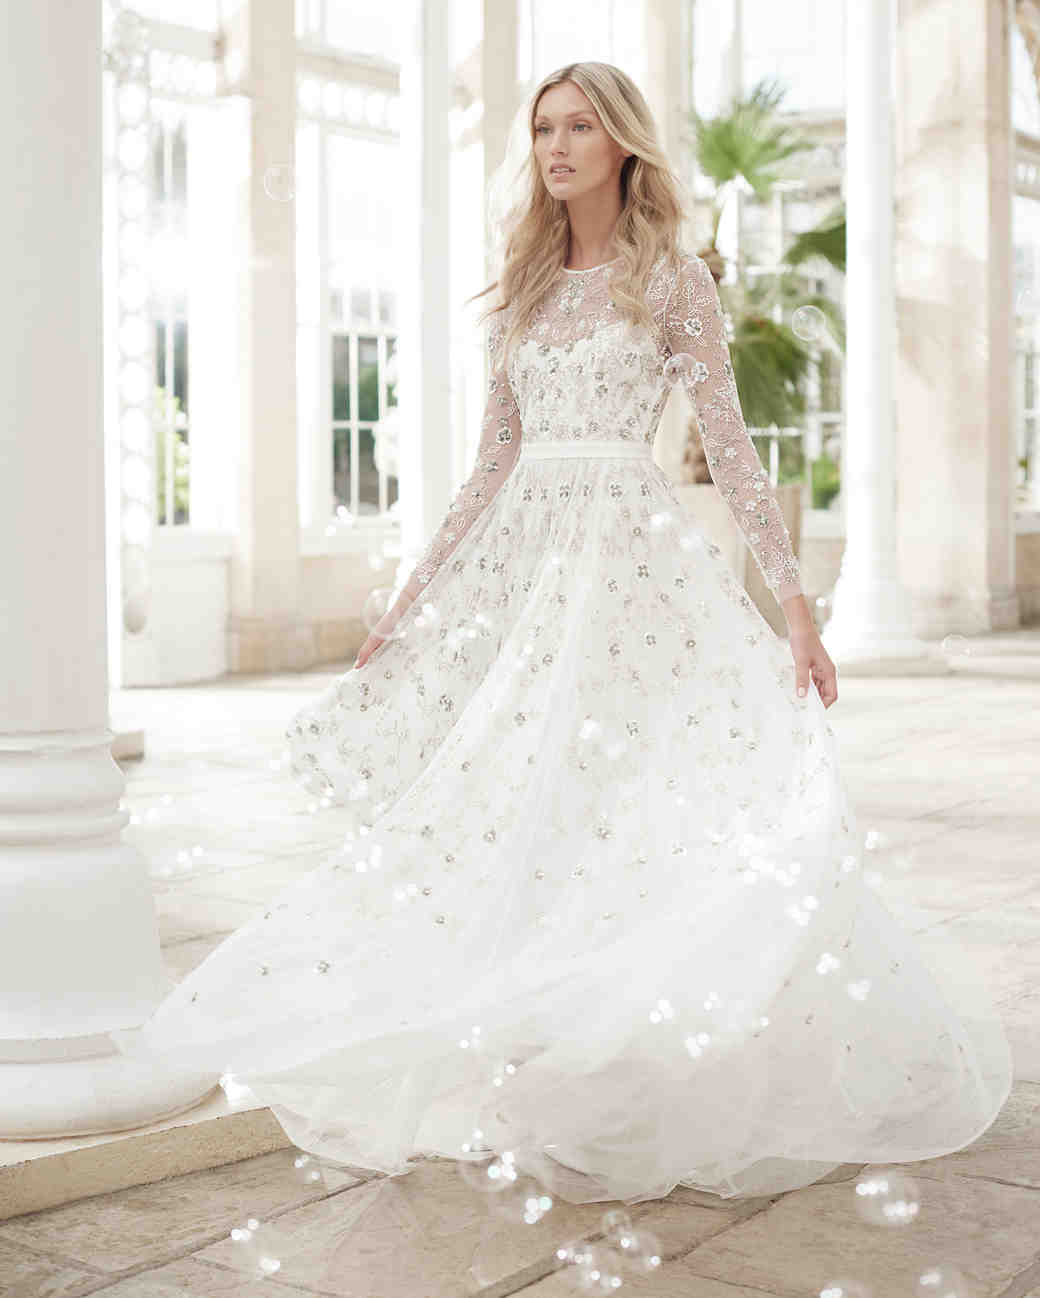 Pictures Of Gowns For Wedding: Needle And Thread's Spring/Summer 2017 Wedding Dress